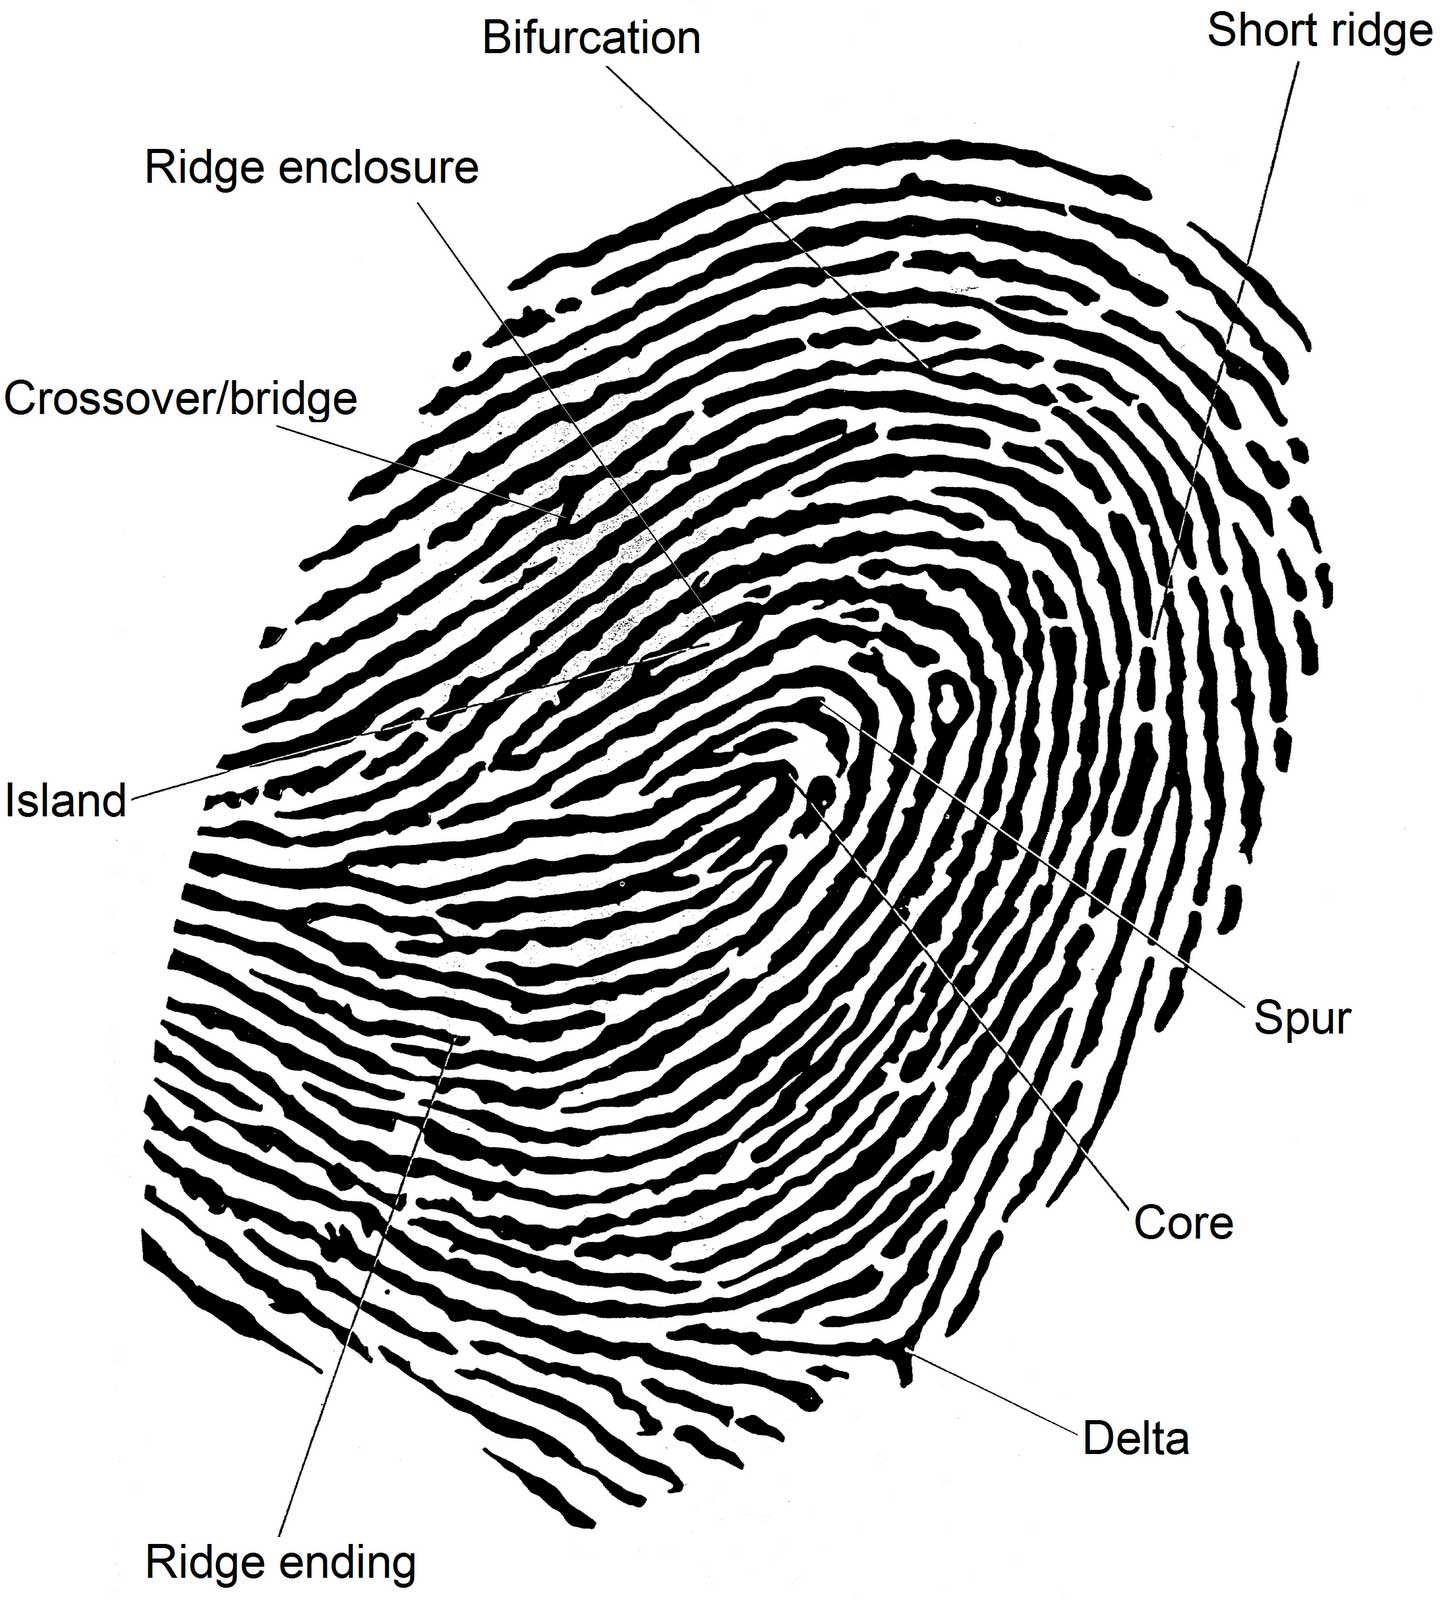 What Is Wrong With The Fingerprint